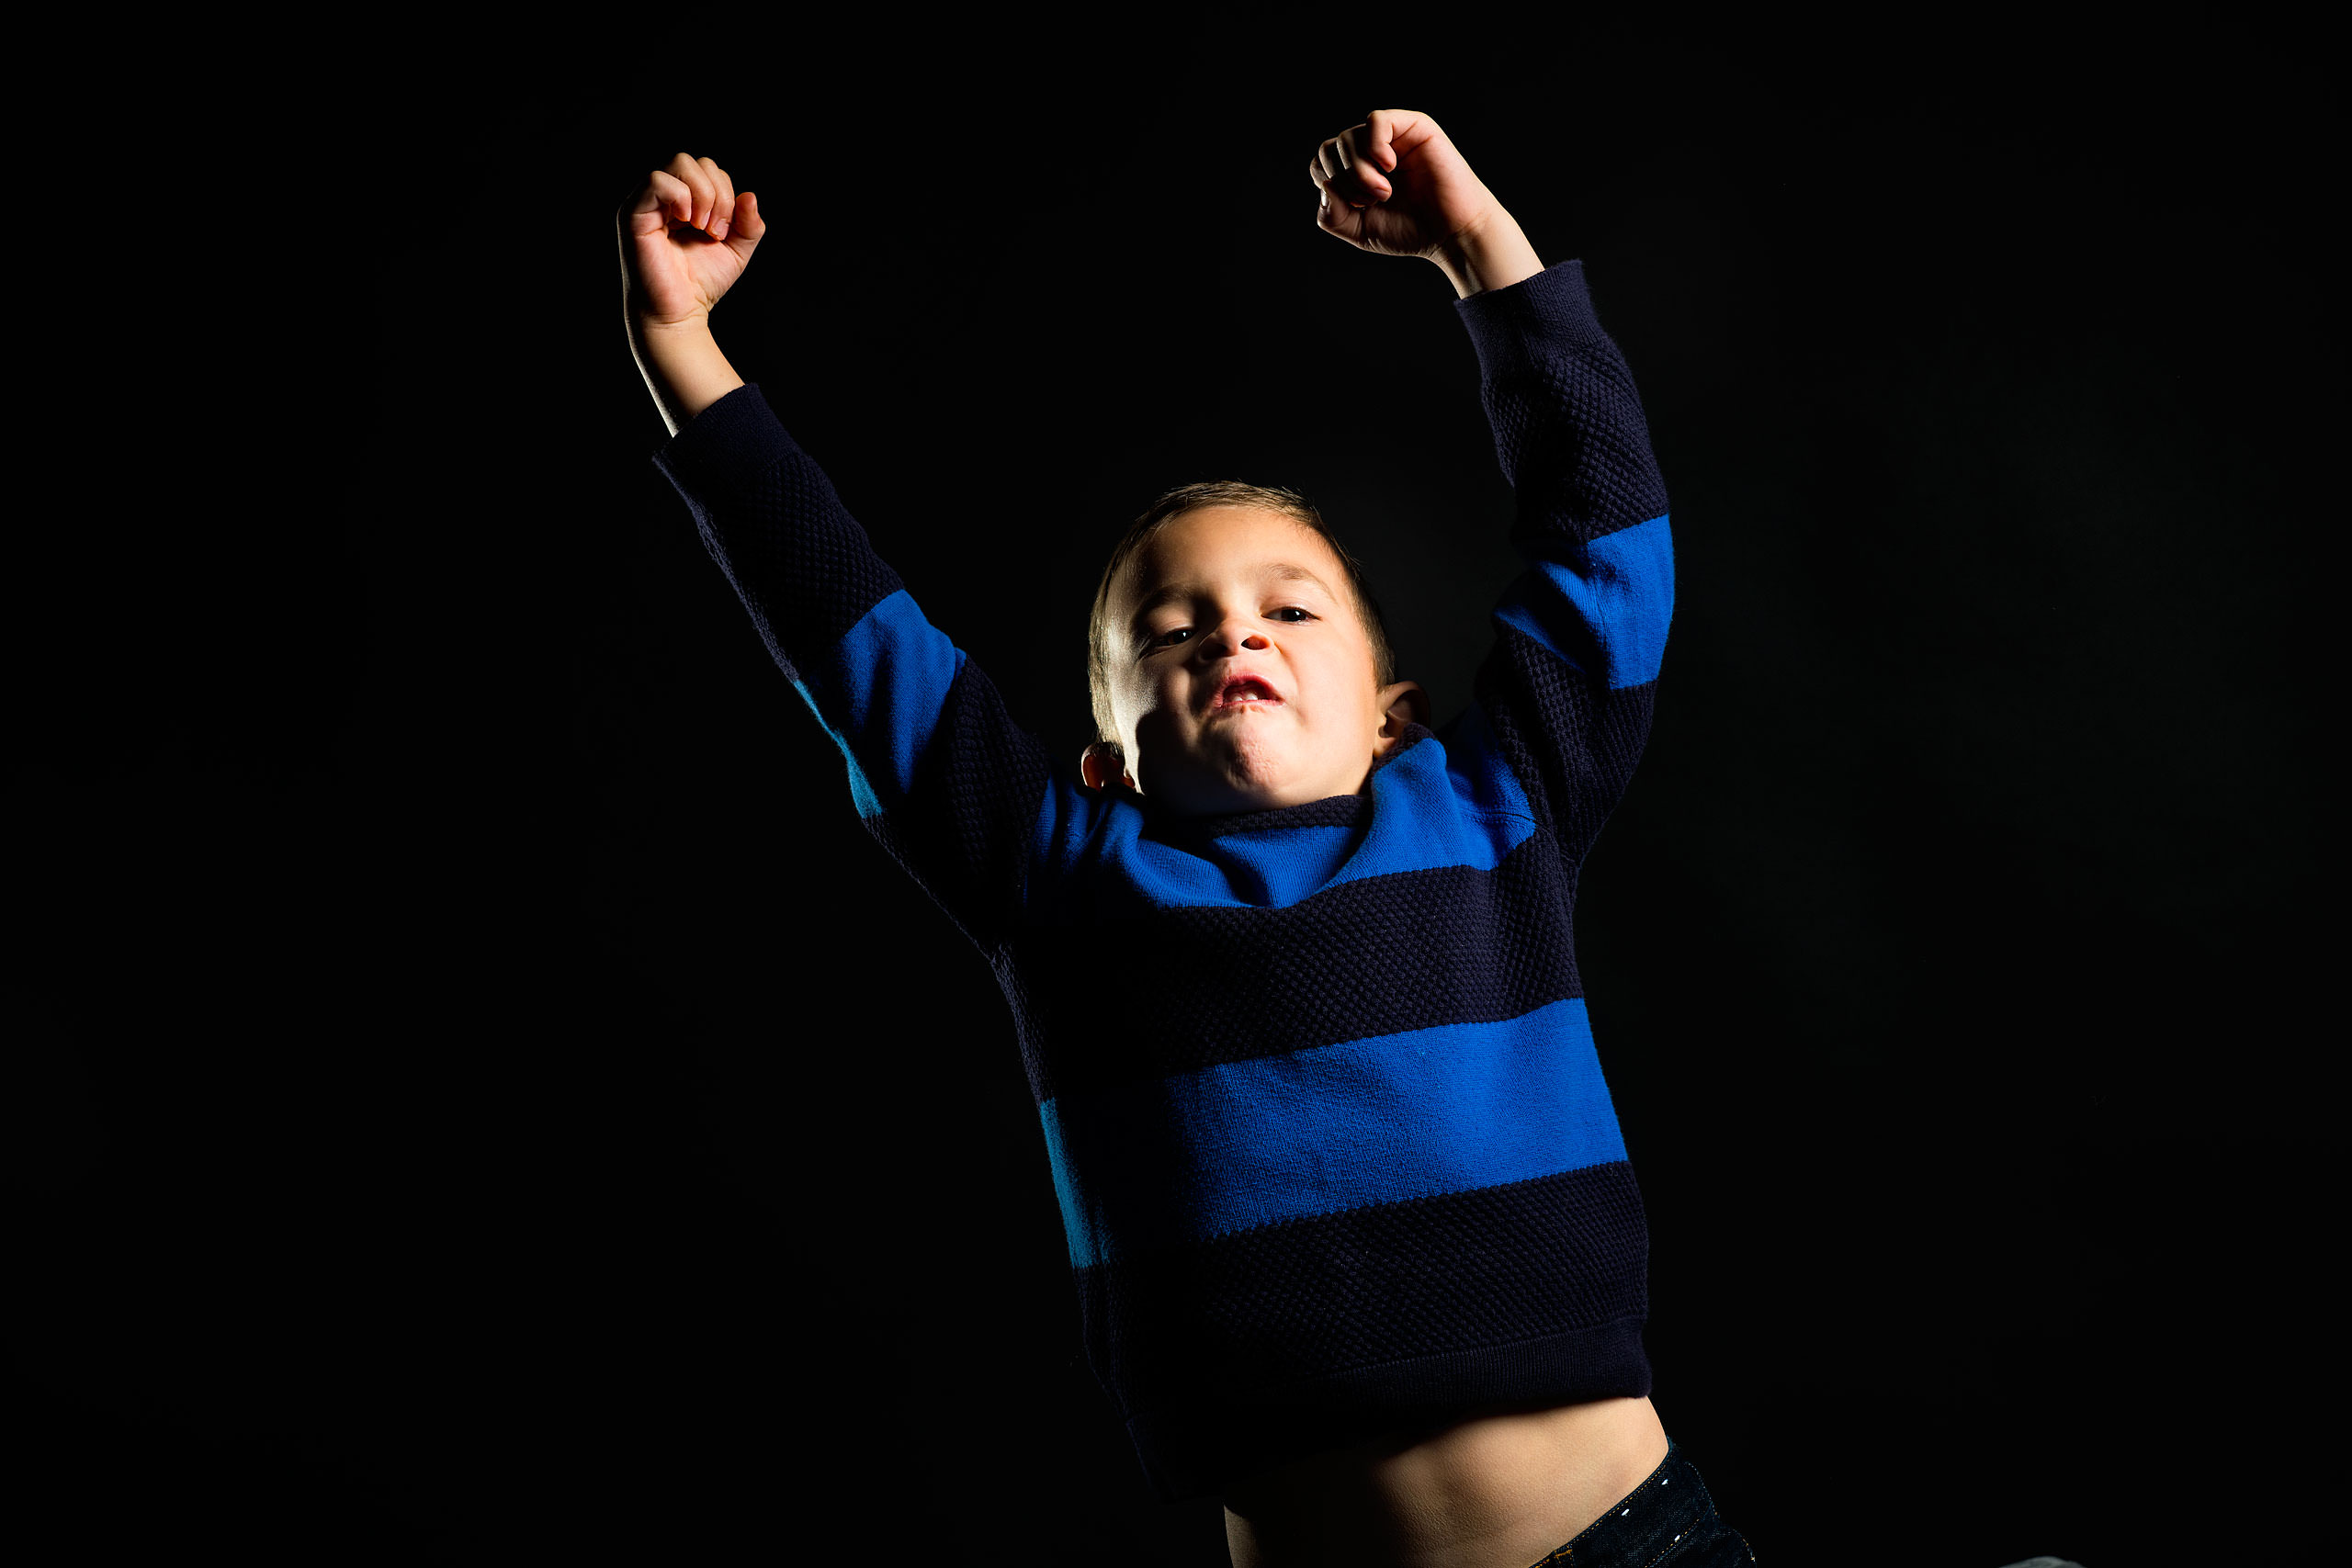 a young boy wearing a blue sweater pumping his arms for a calgary portrait studio session by sean leblanc